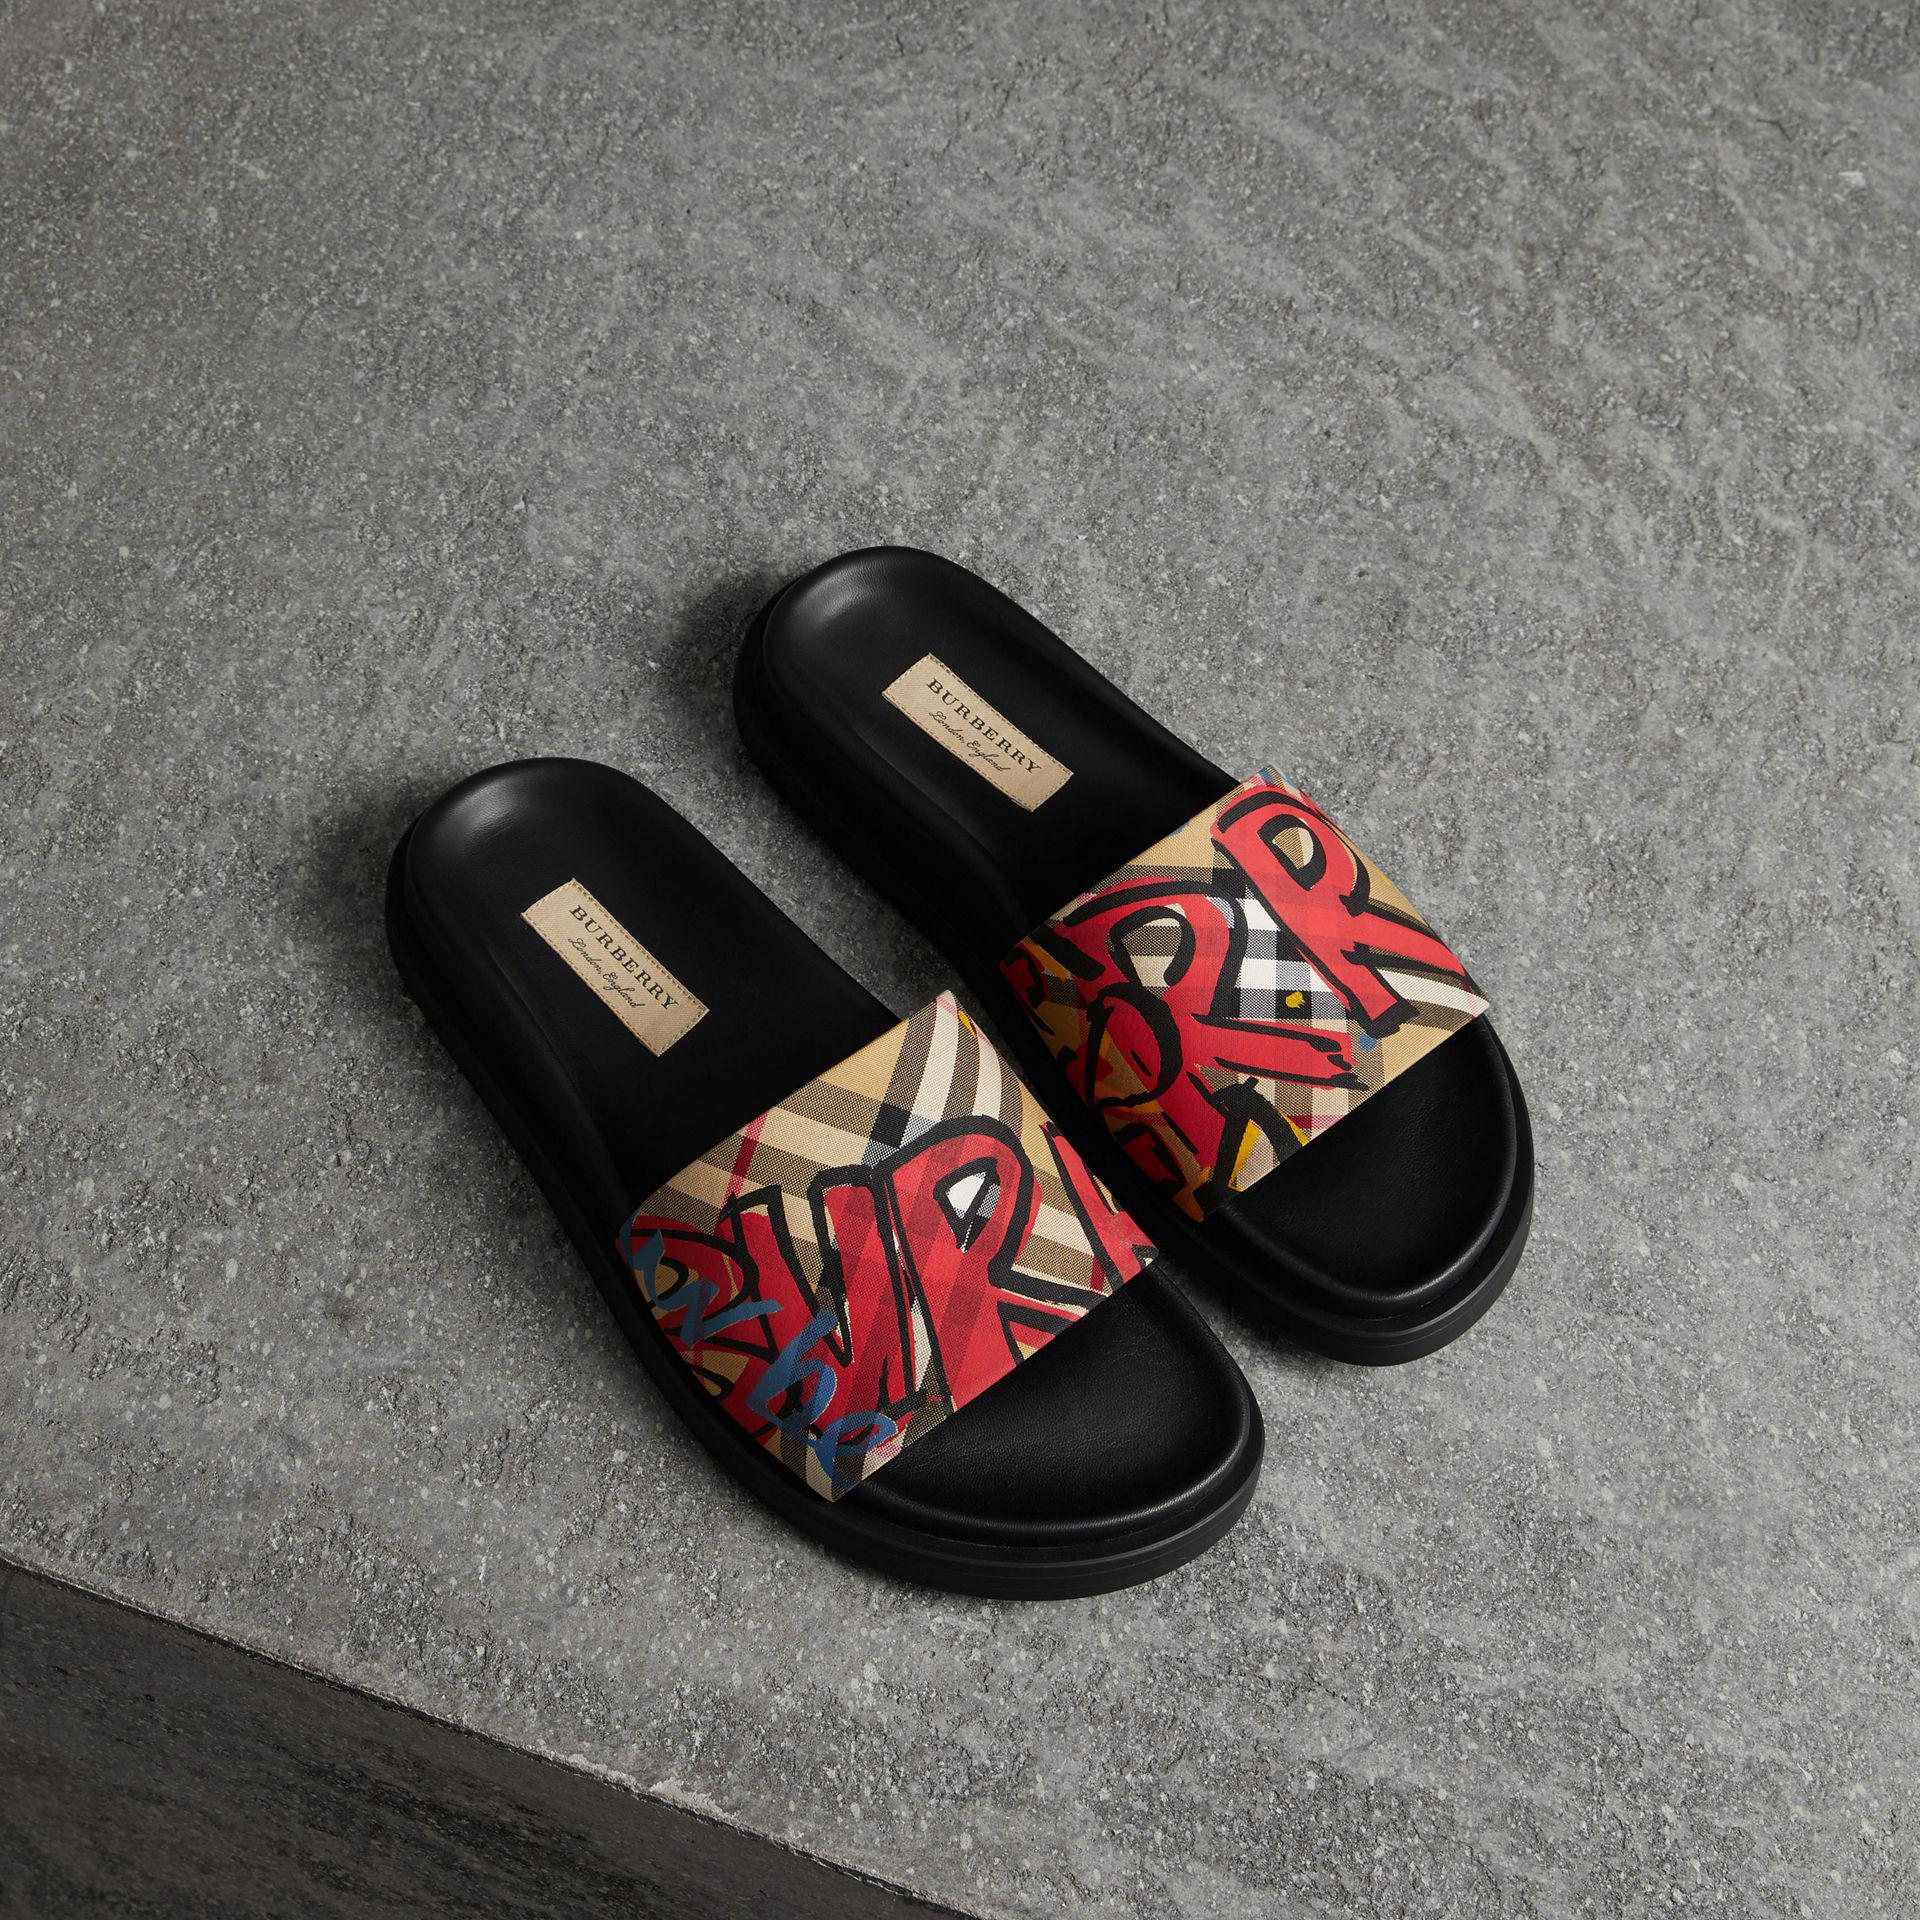 caff2557315d8 Lyst - Burberry Graffiti Print Vintage Check And Leather Slides